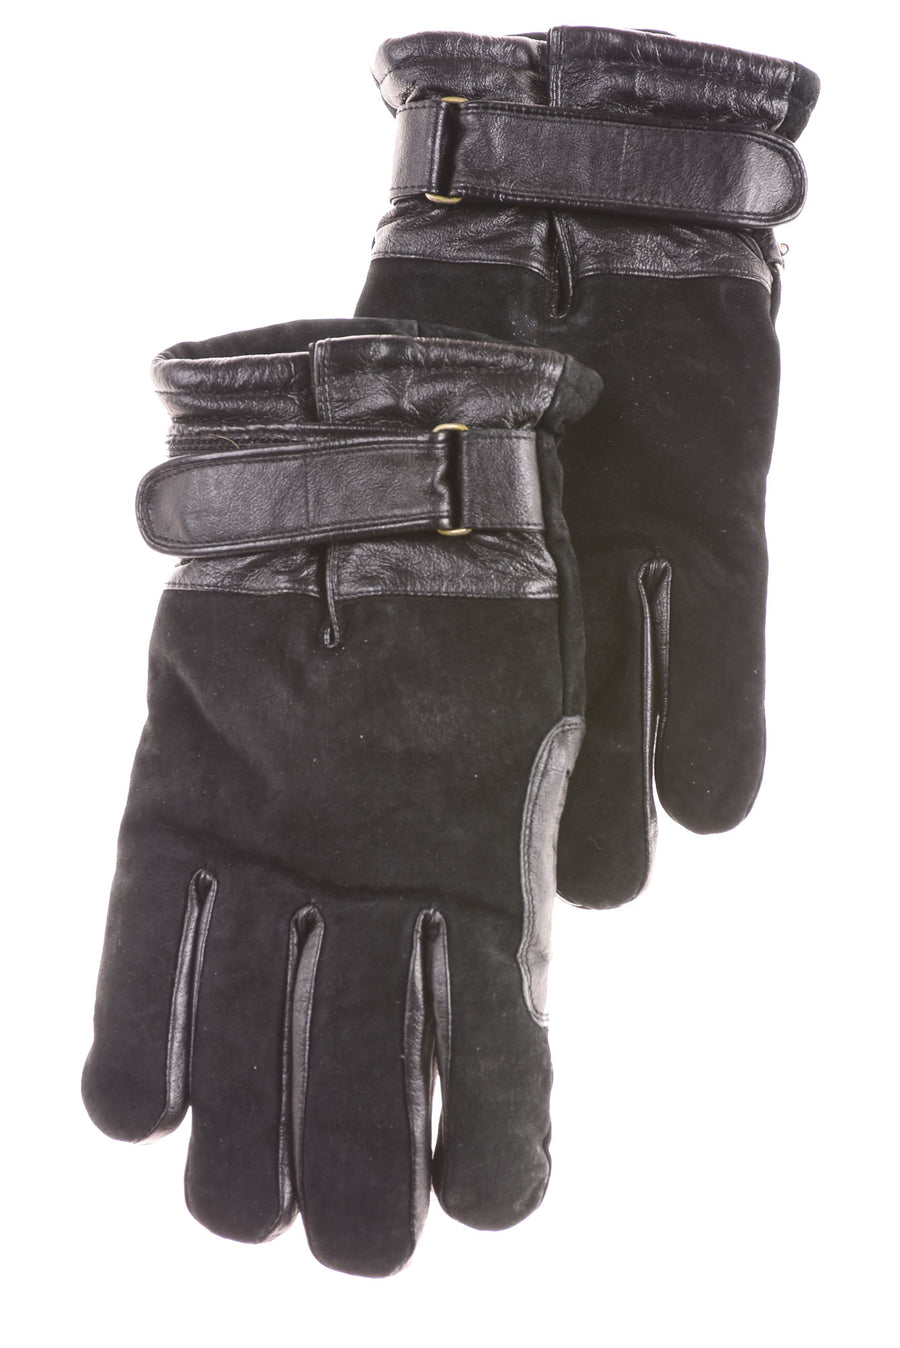 Men's Gloves By Wilson